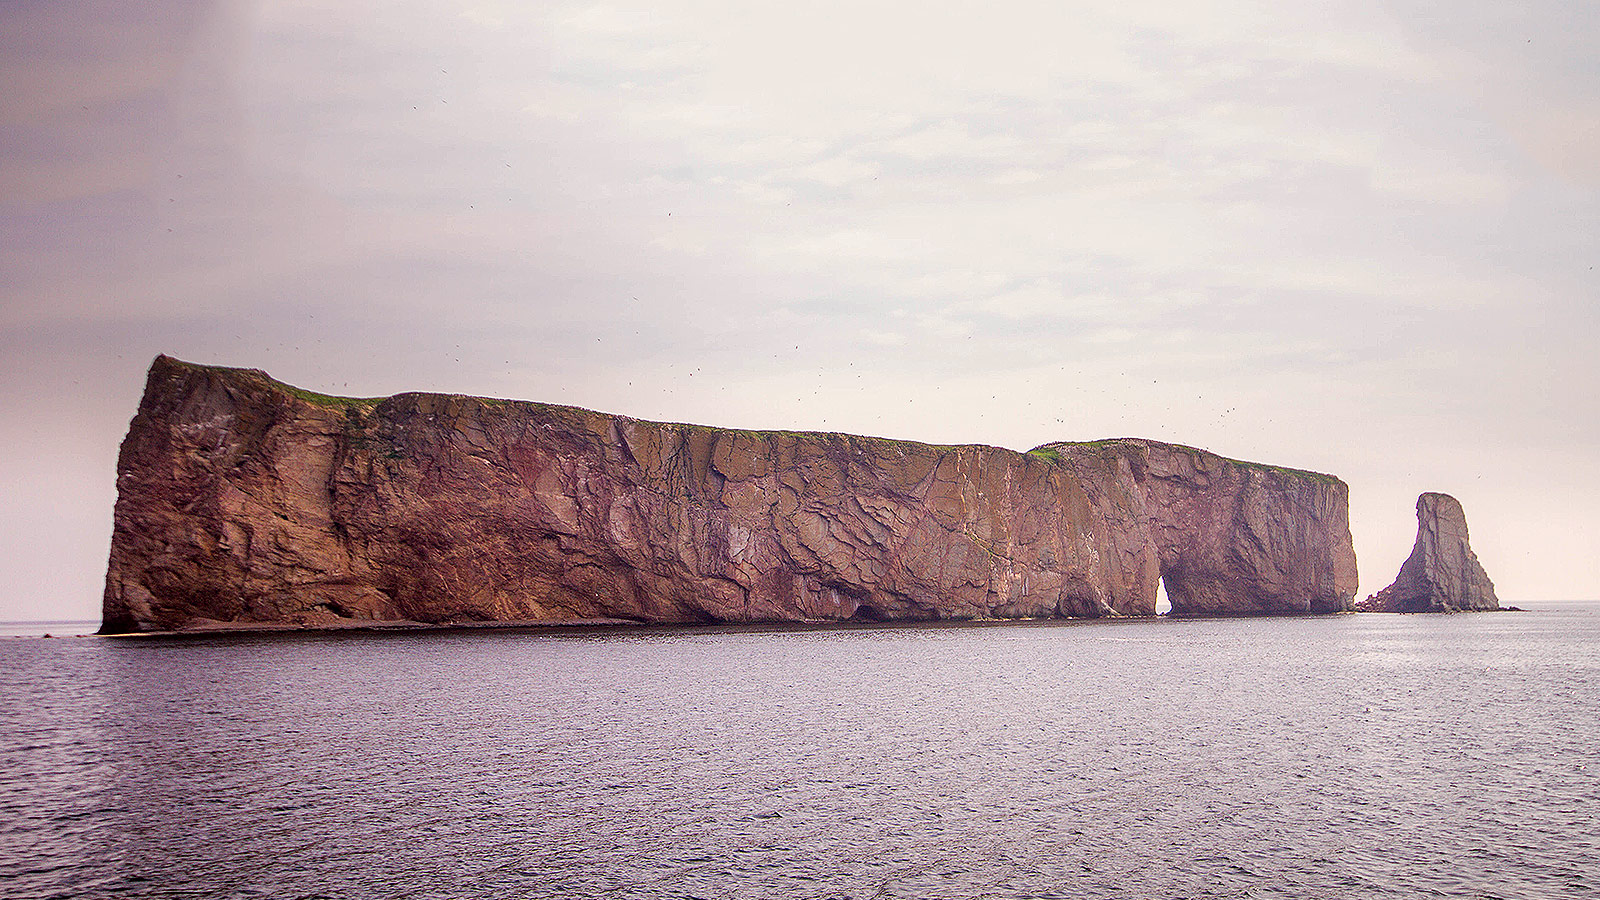 Perce Rock as seen from a boat cruise of the National Park of Bonaventure Island and Perce Rock.